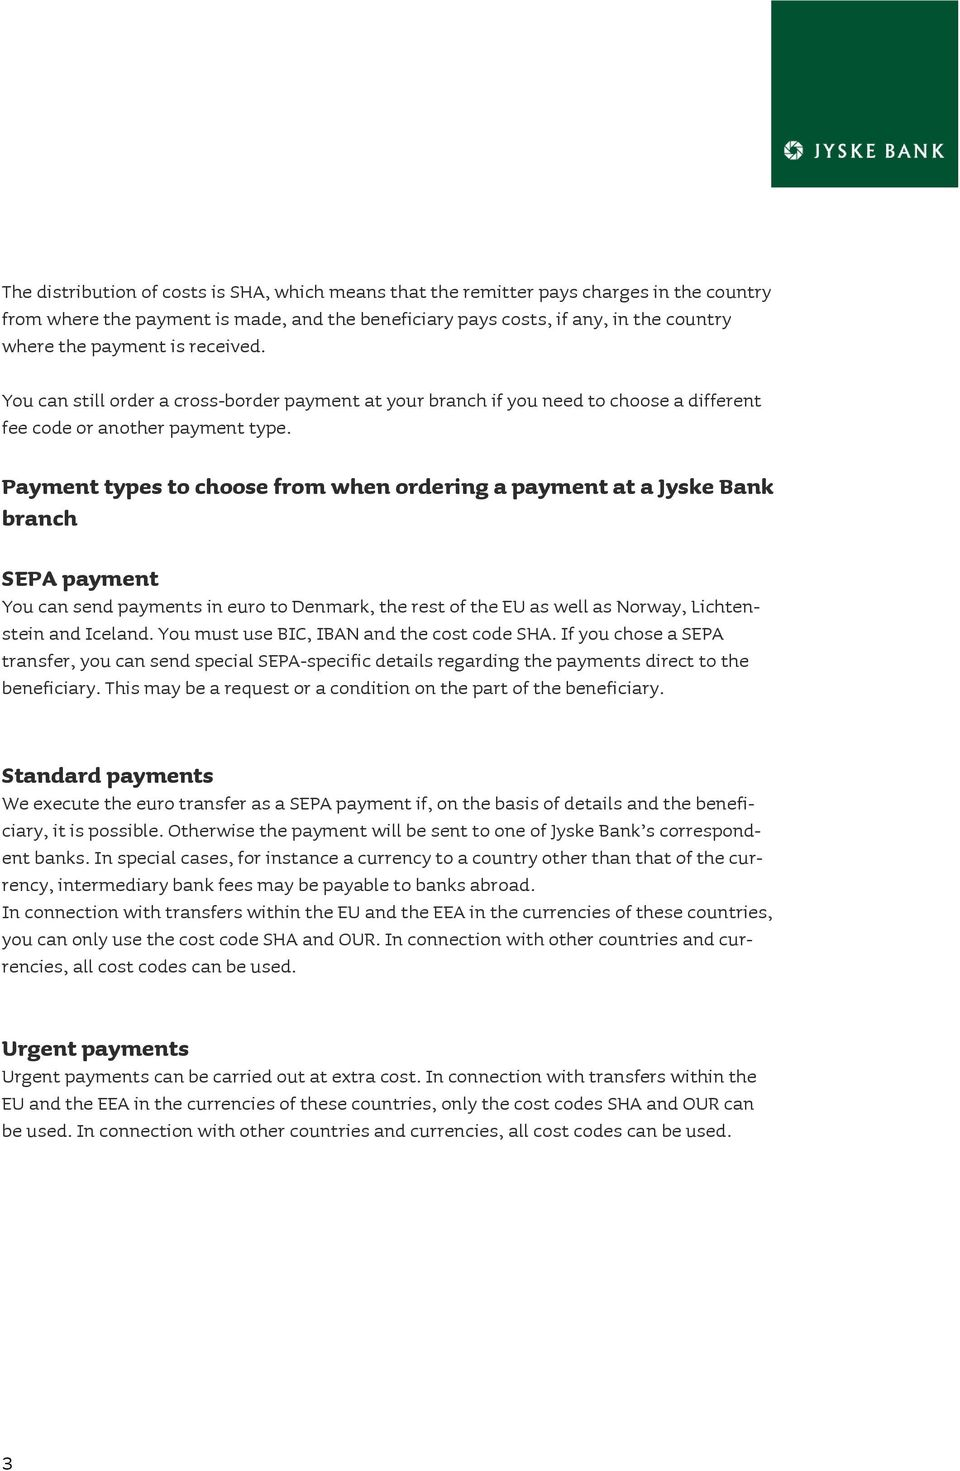 Payment types to choose from when ordering a payment at a Jyske Bank branch SEPA payment You can send payments in euro to Denmark, the rest of the EU as well as Norway, Lichtenstein and Iceland.